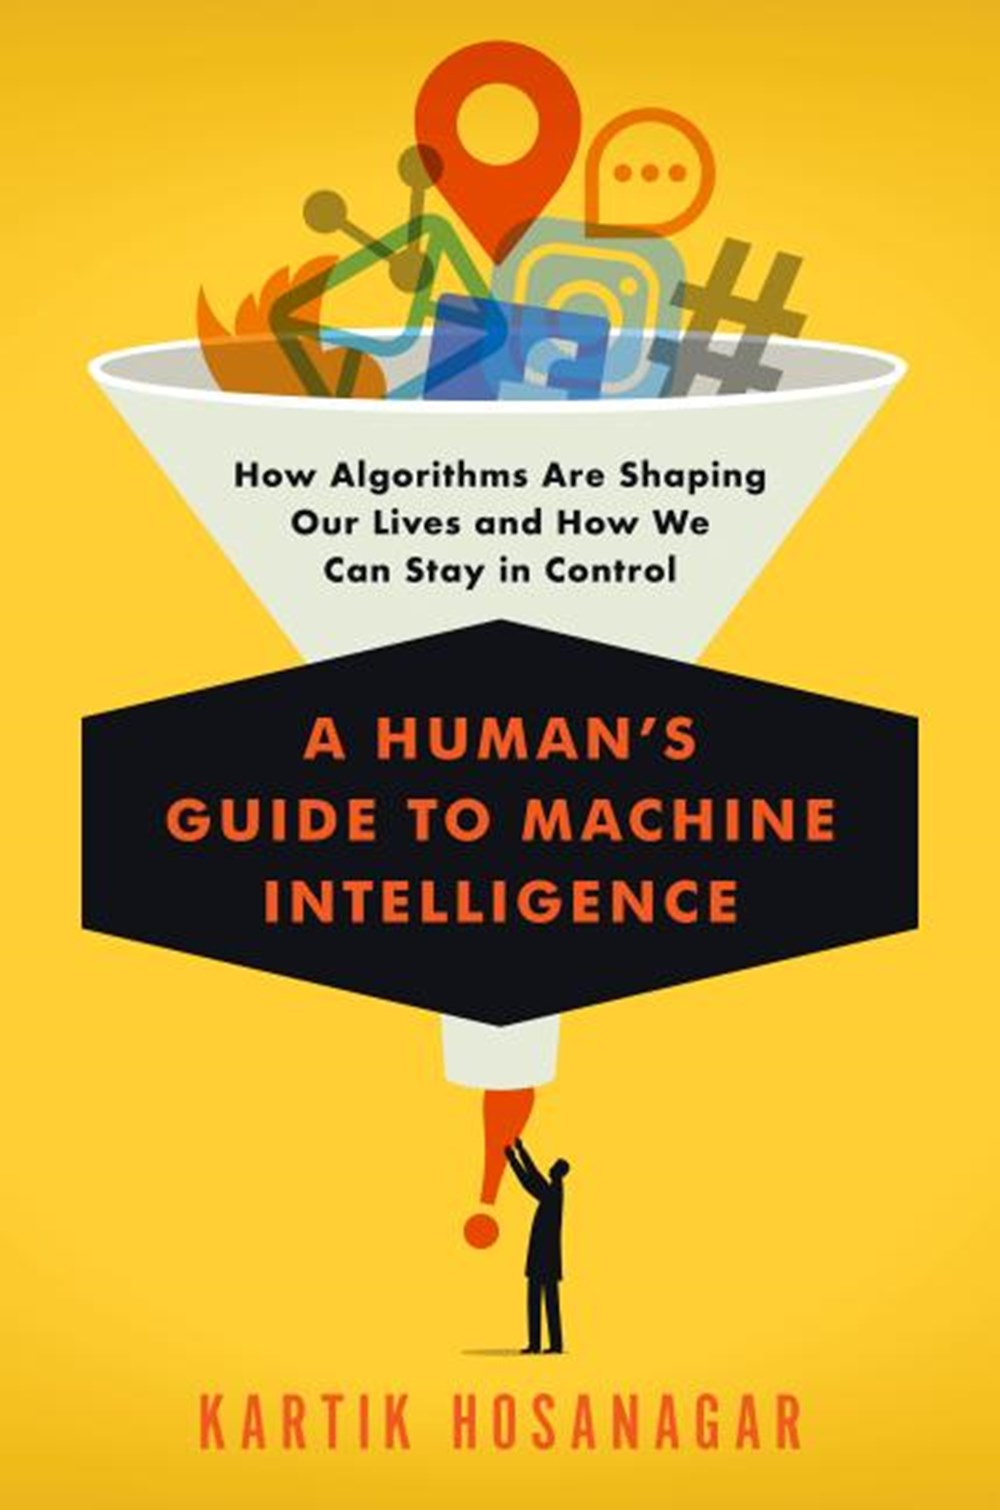 Human's Guide to Machine Intelligence How Algorithms Are Shaping Our Lives and How We Can Stay in Co